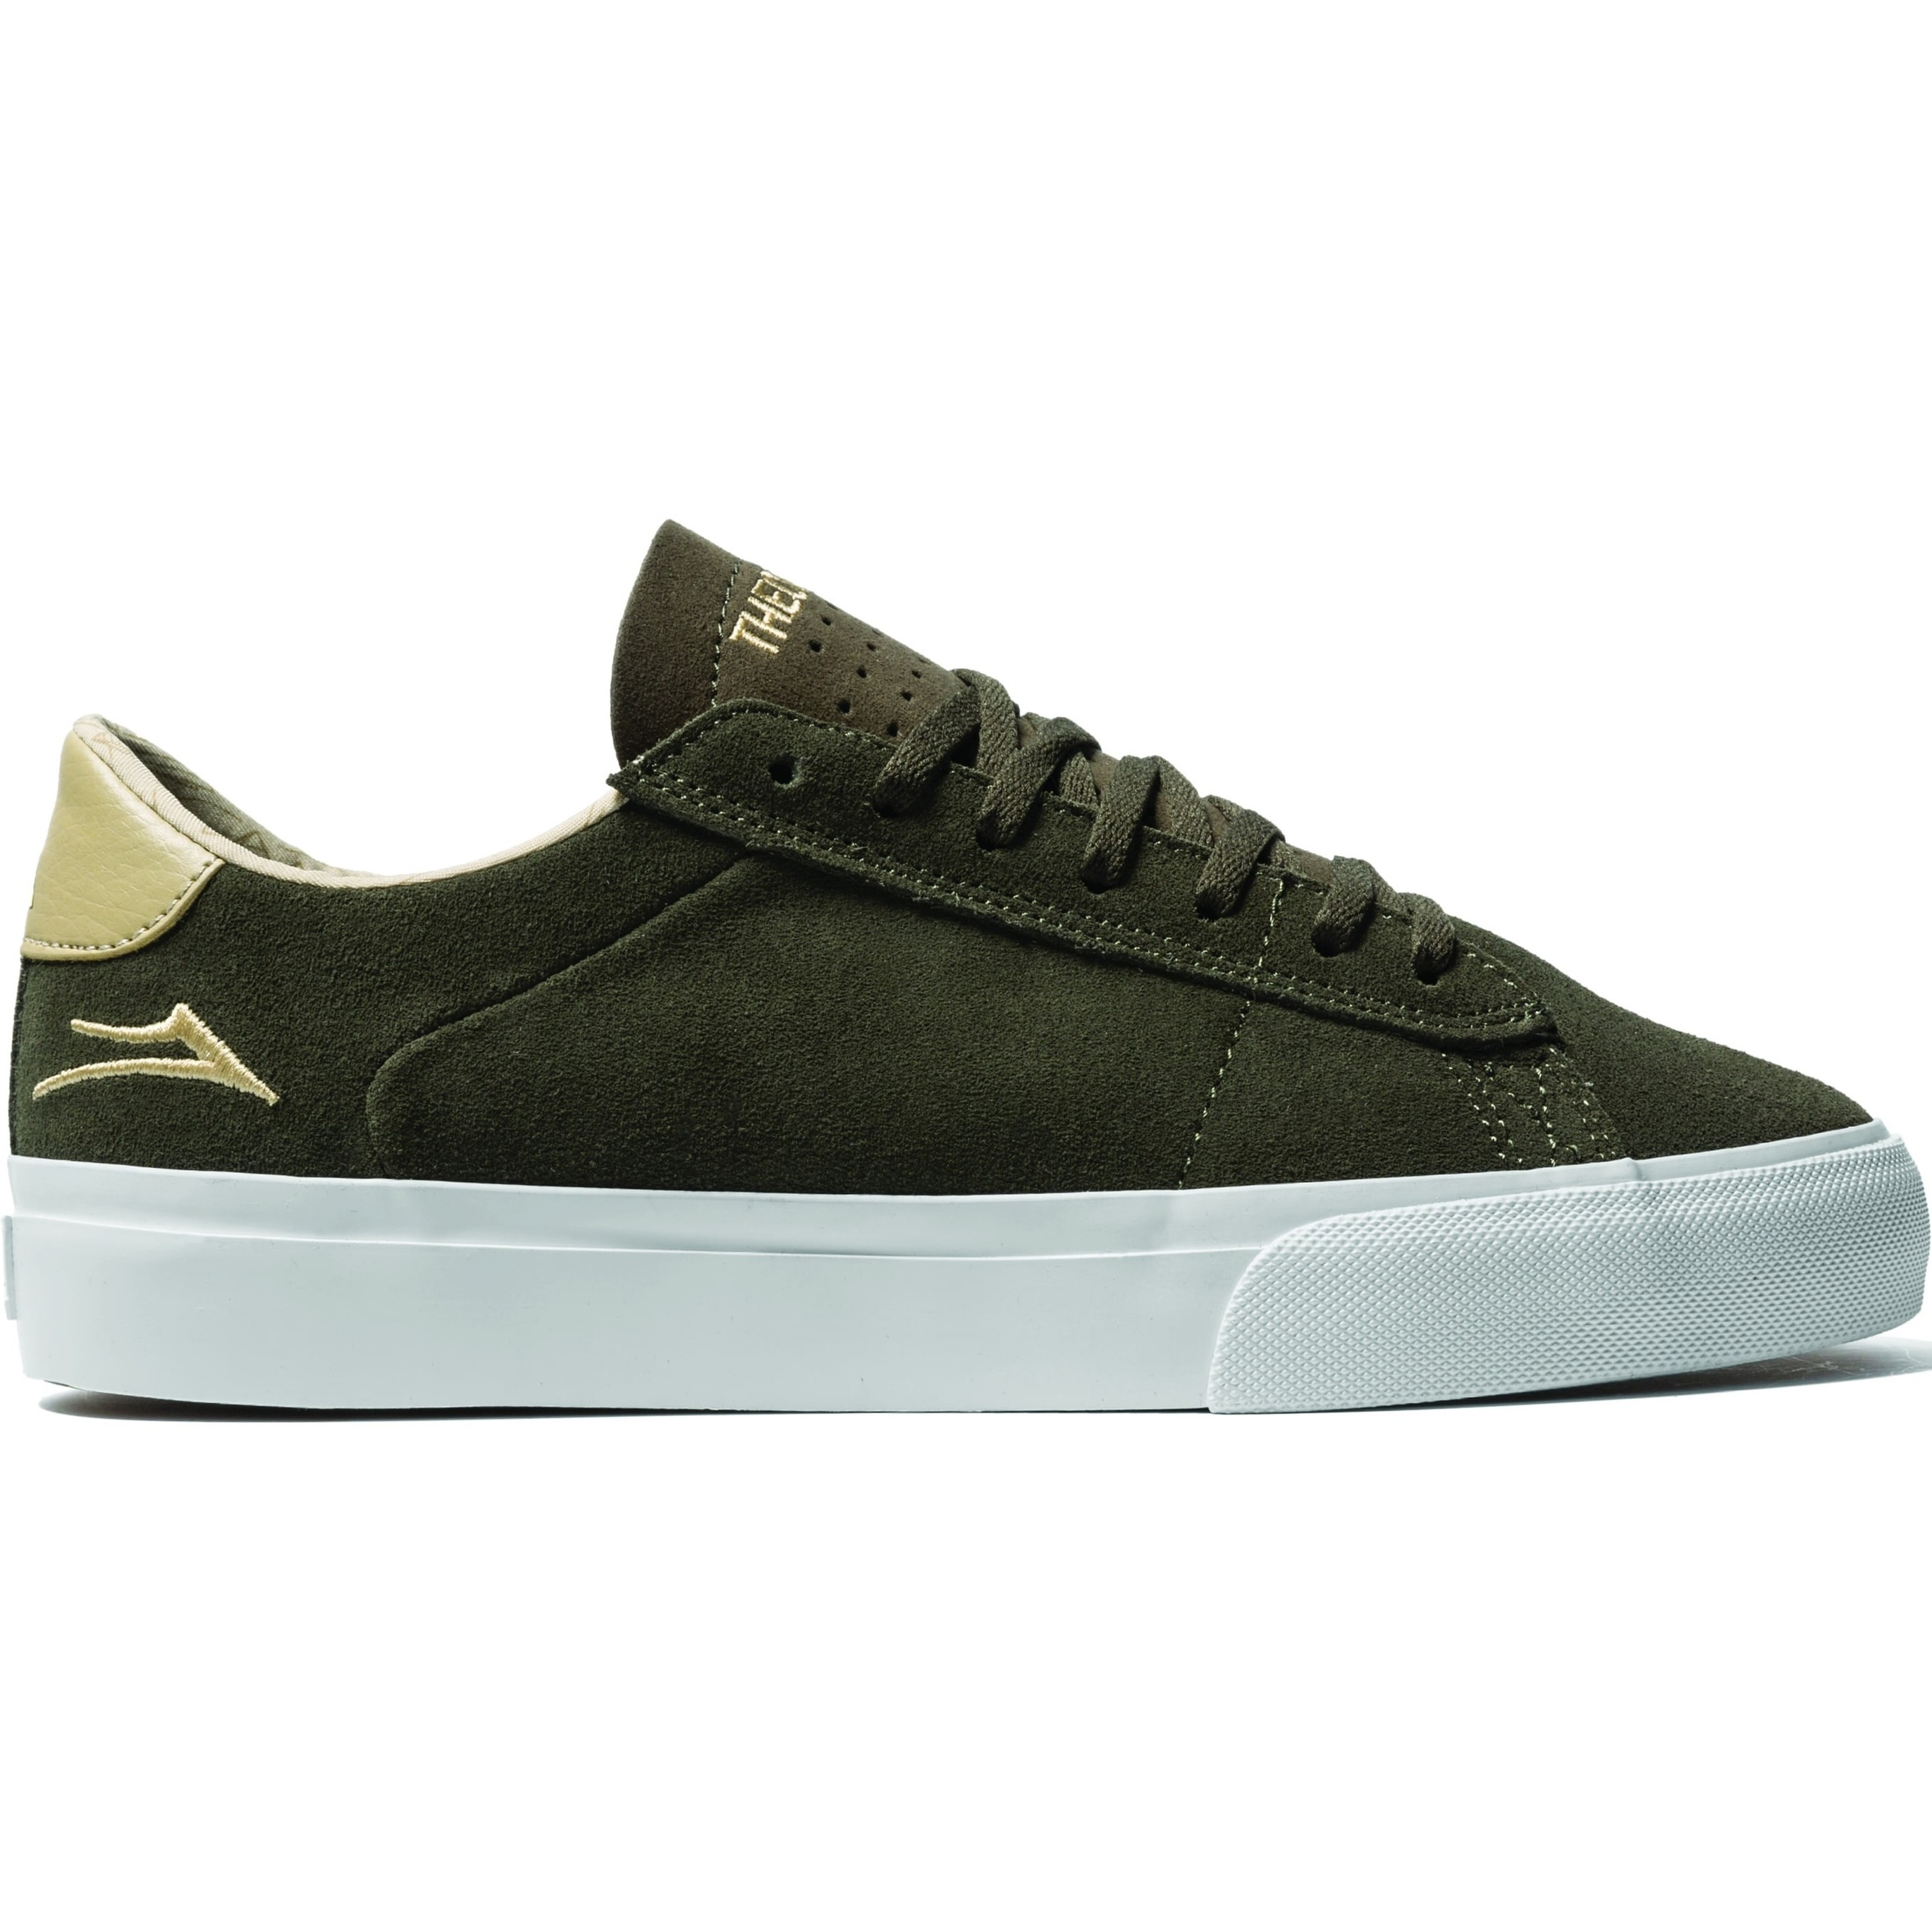 Newport Low (Olive/Sand Suede)